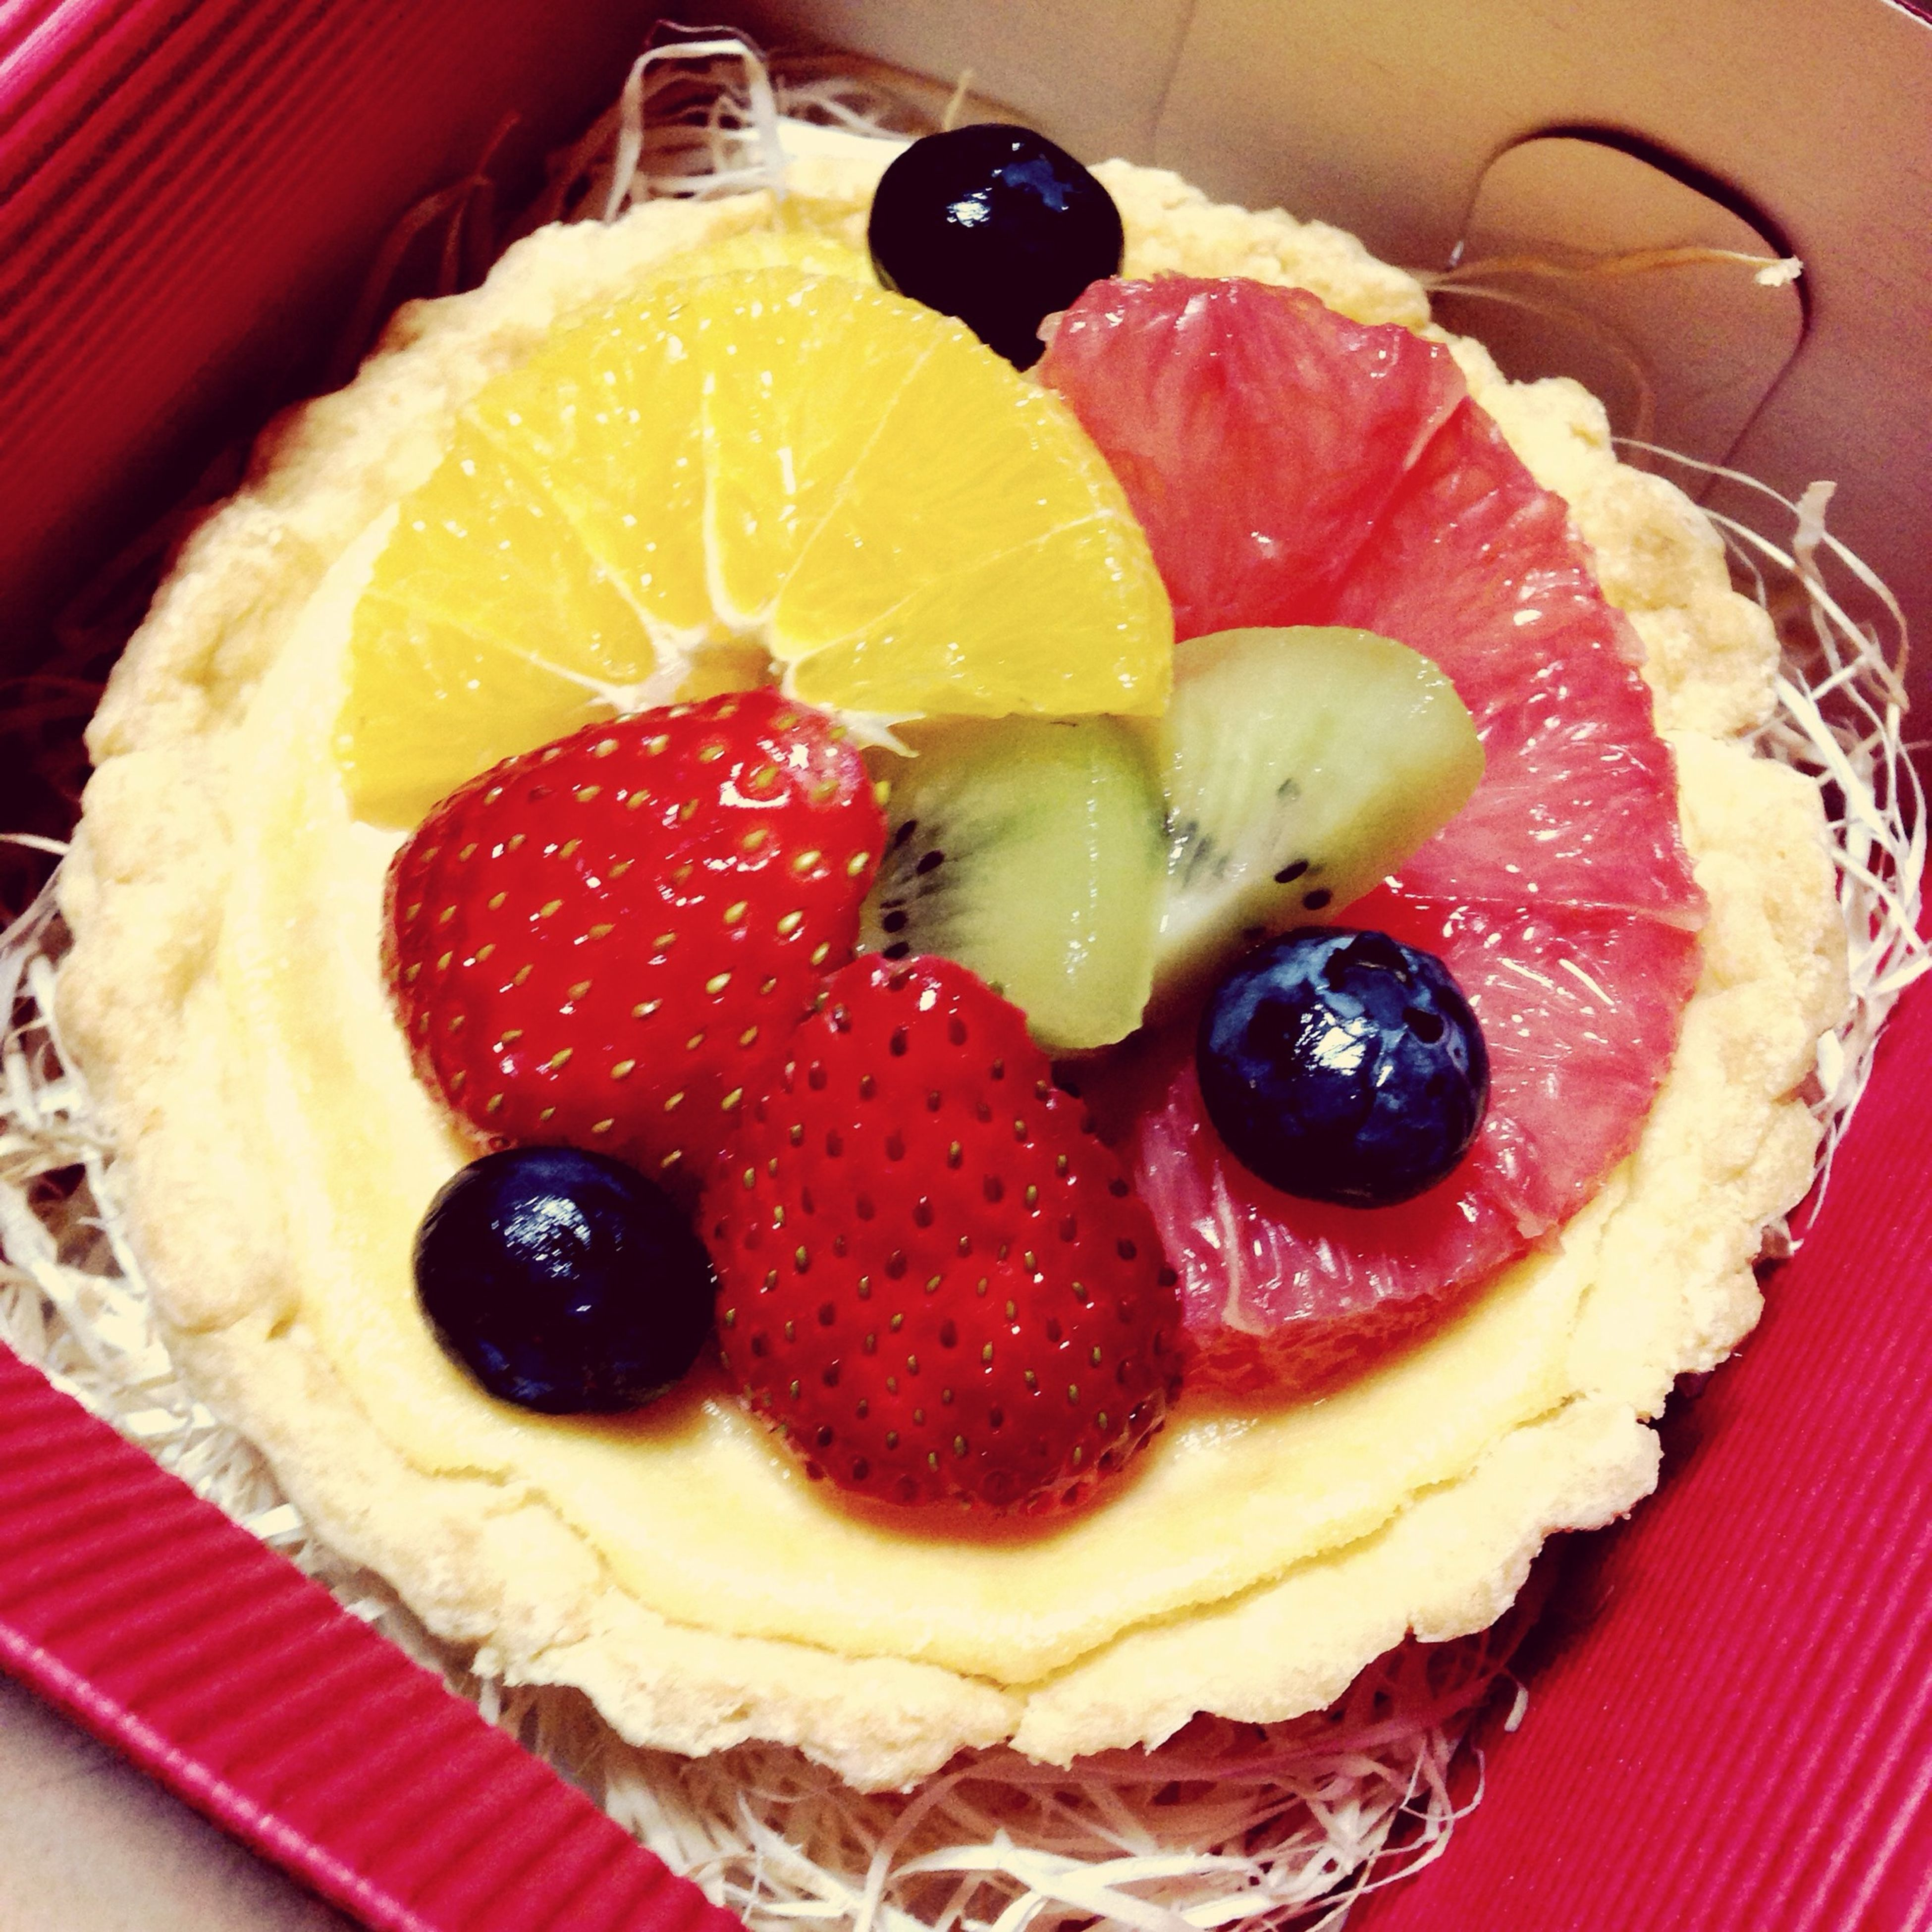 food and drink, food, freshness, indoors, sweet food, fruit, dessert, ready-to-eat, strawberry, indulgence, still life, unhealthy eating, cake, temptation, plate, raspberry, close-up, slice, berry fruit, table